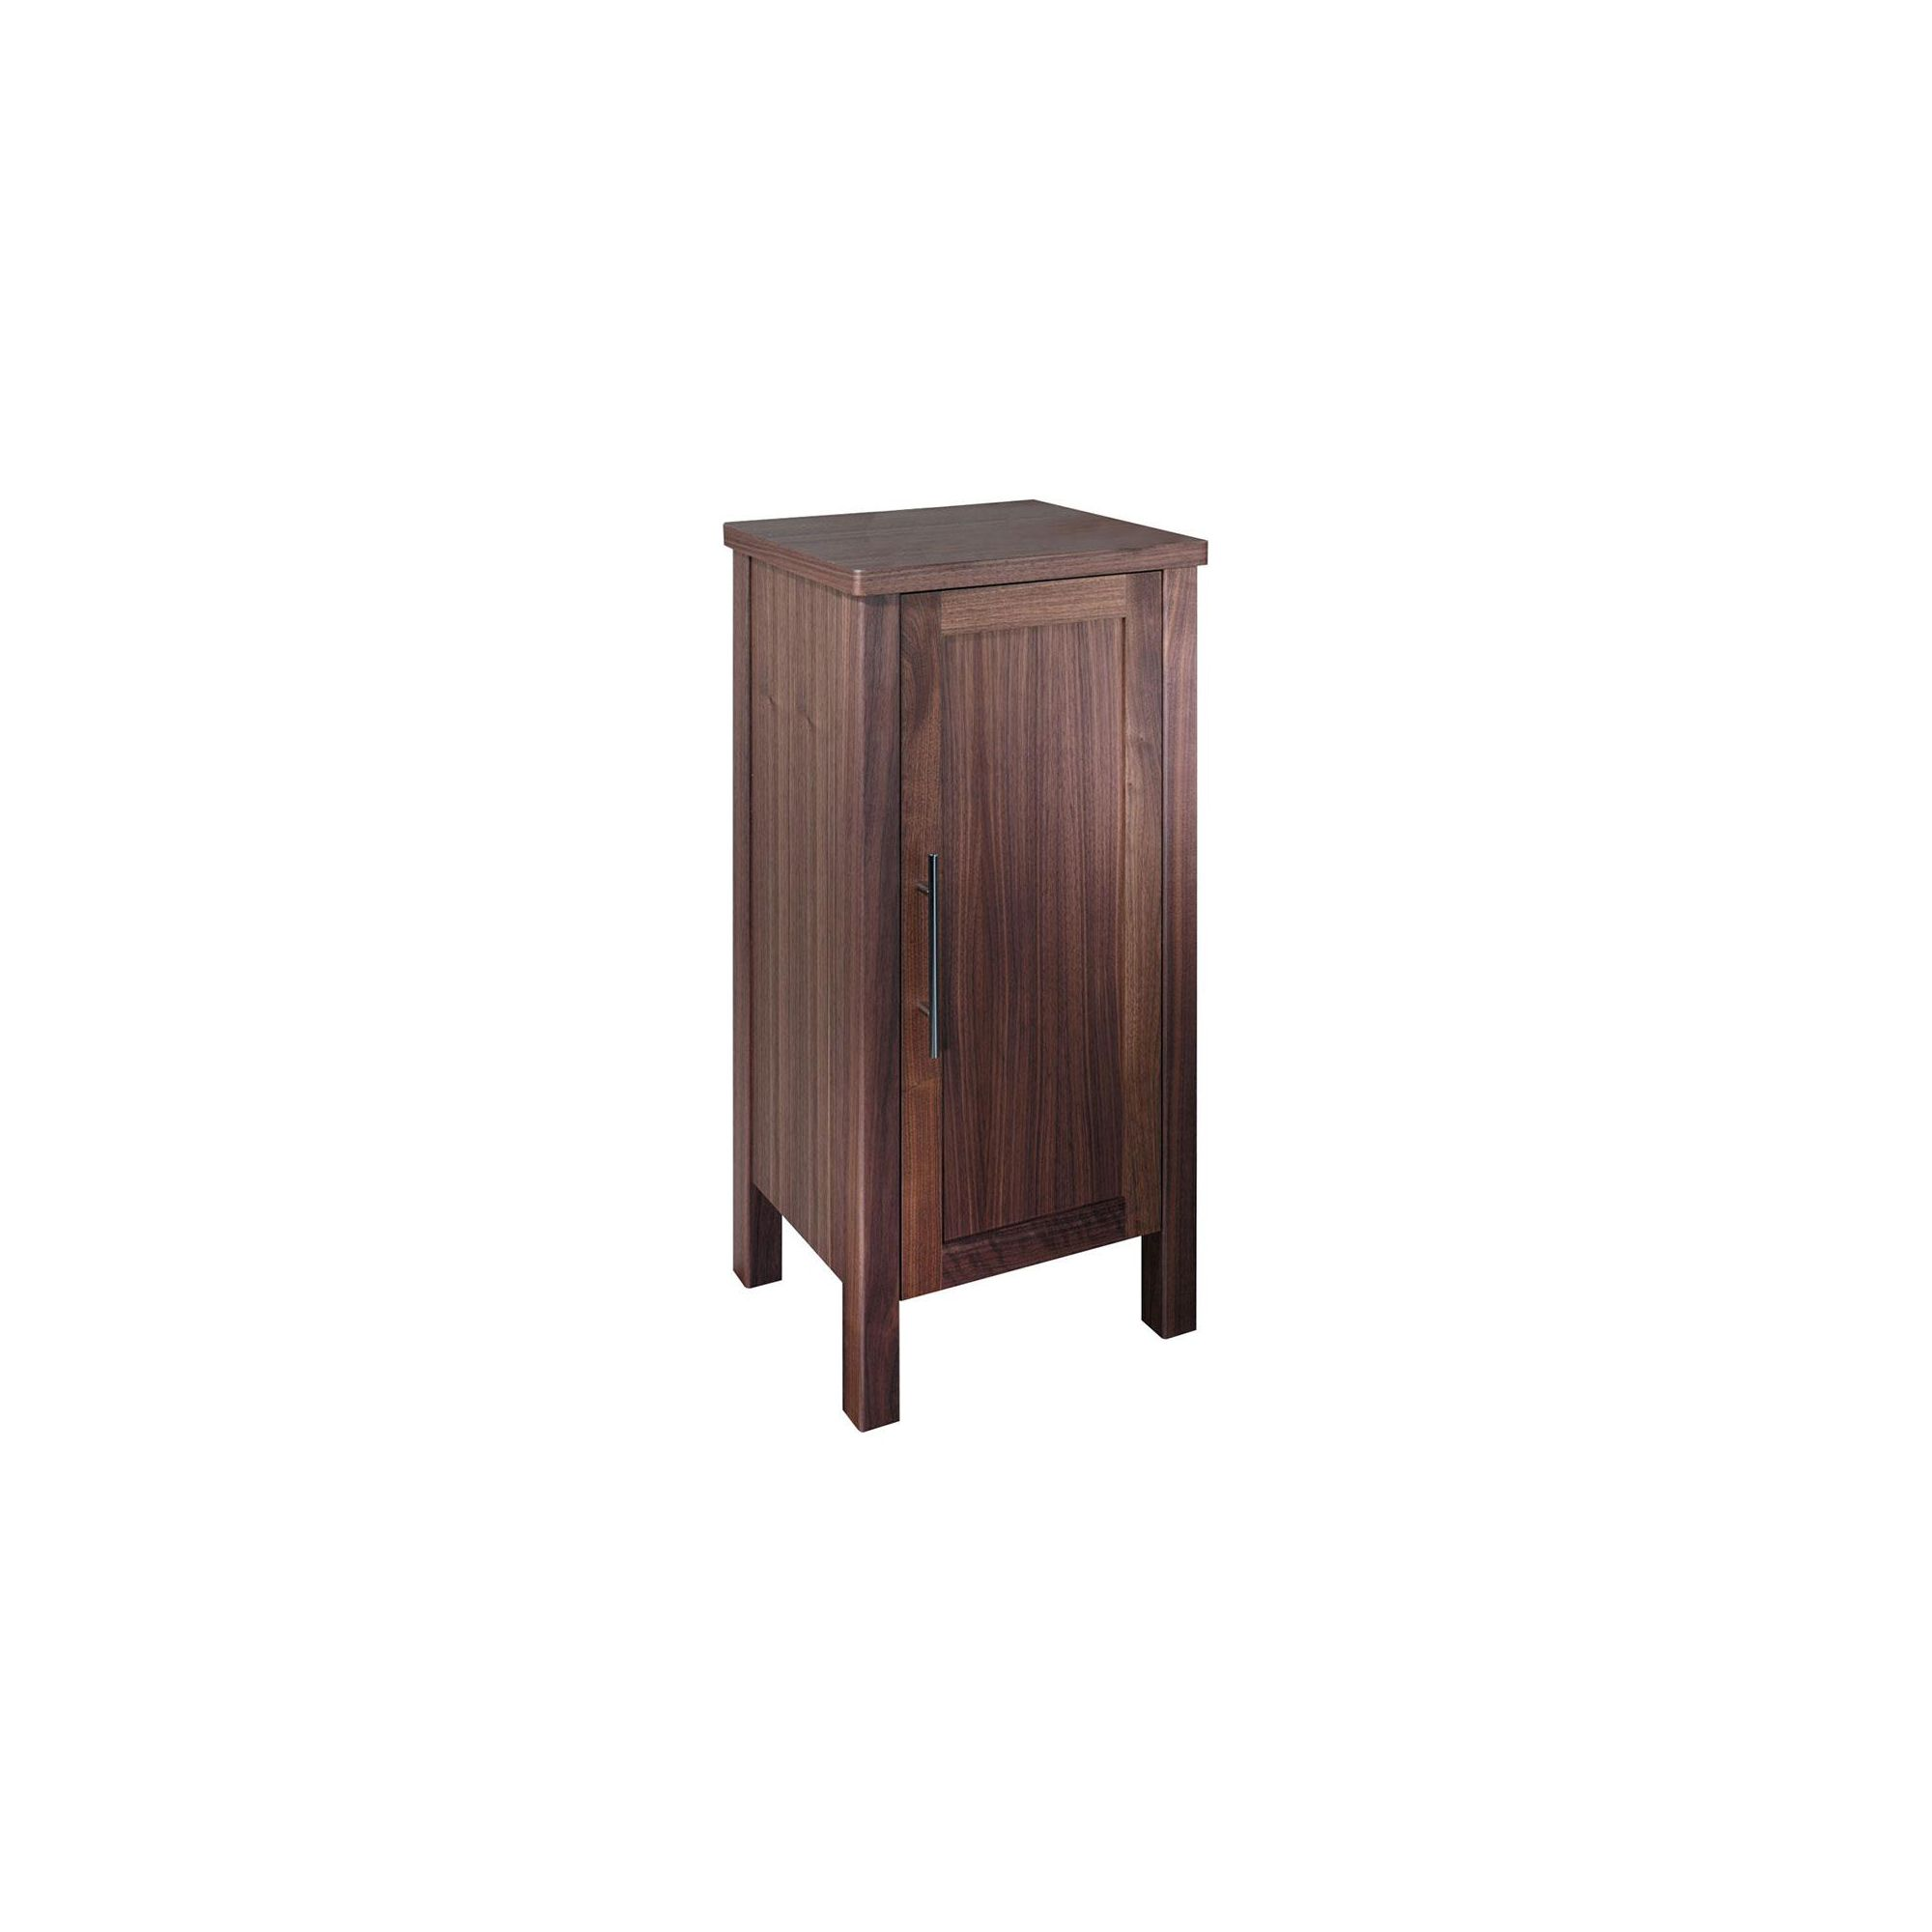 Tavistock Lava Walnut Floor Standing Storage Cupboard - 420mm Wide